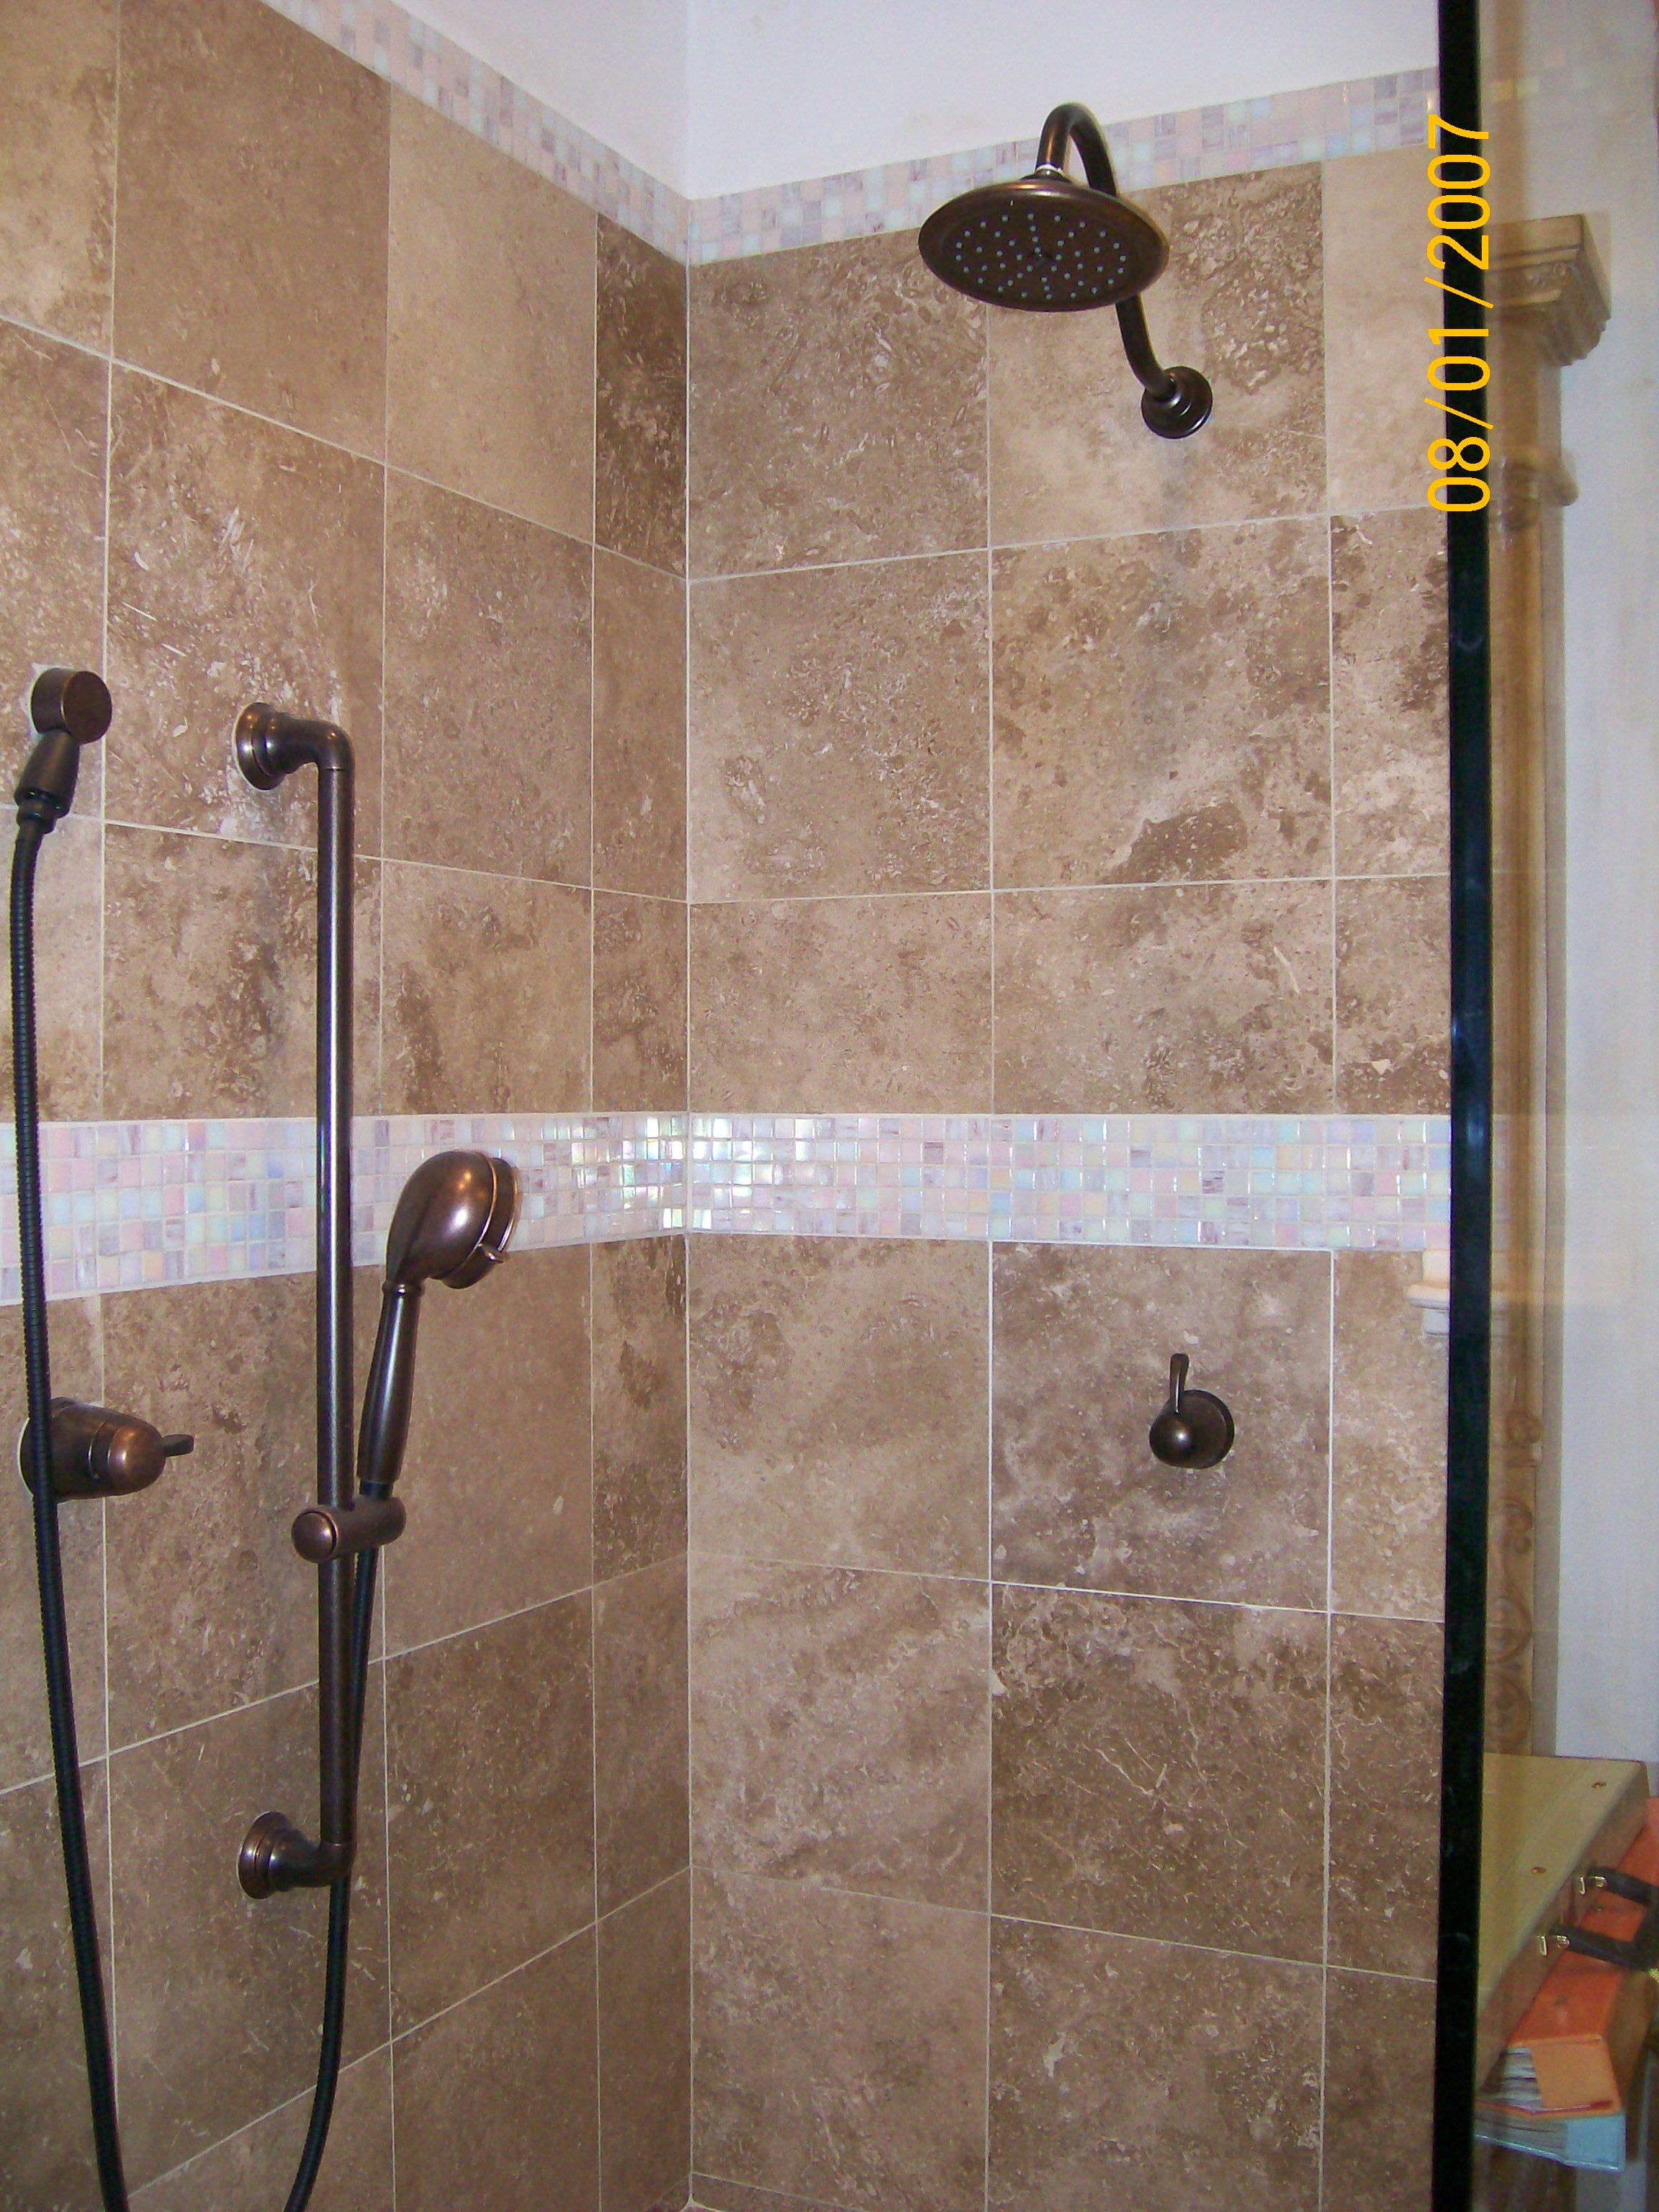 tiled bathroom shower | Ceramic Tiled Shower with Iridescent Glass ...